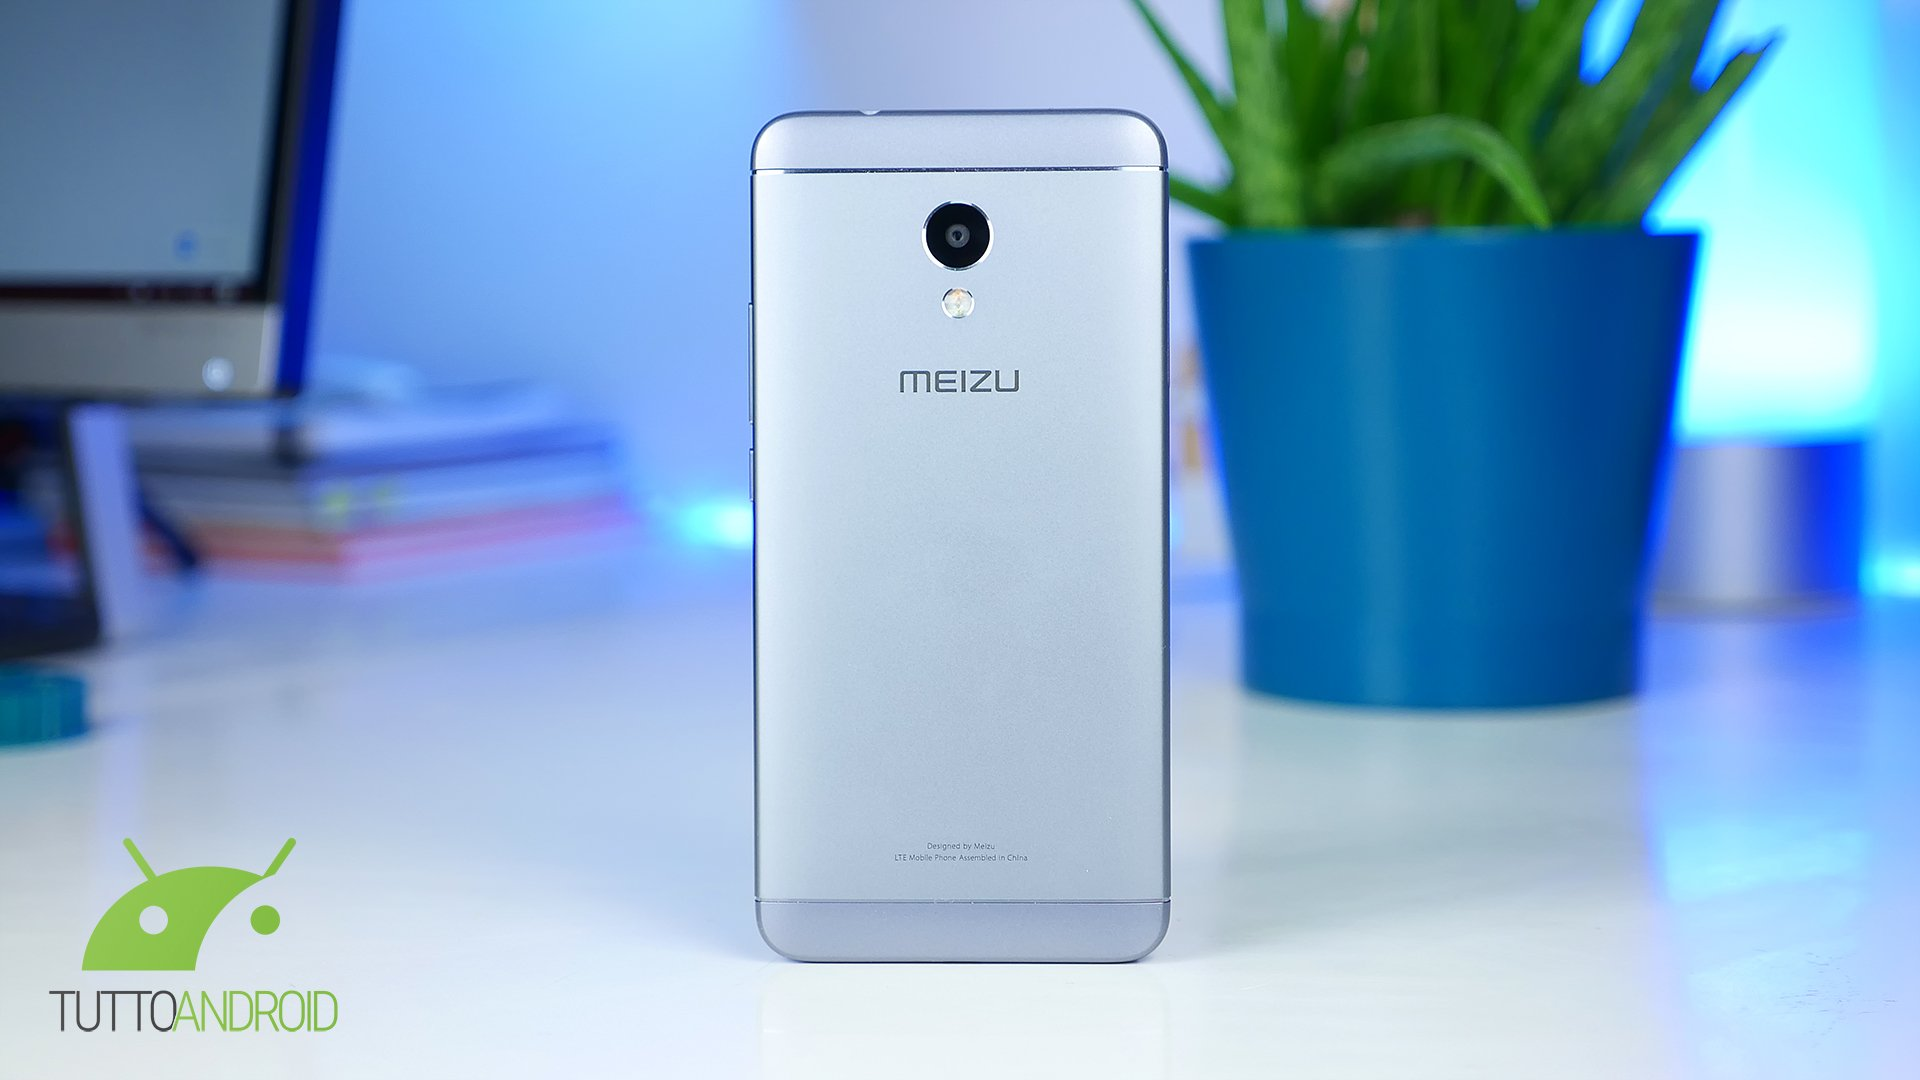 meizu flame android